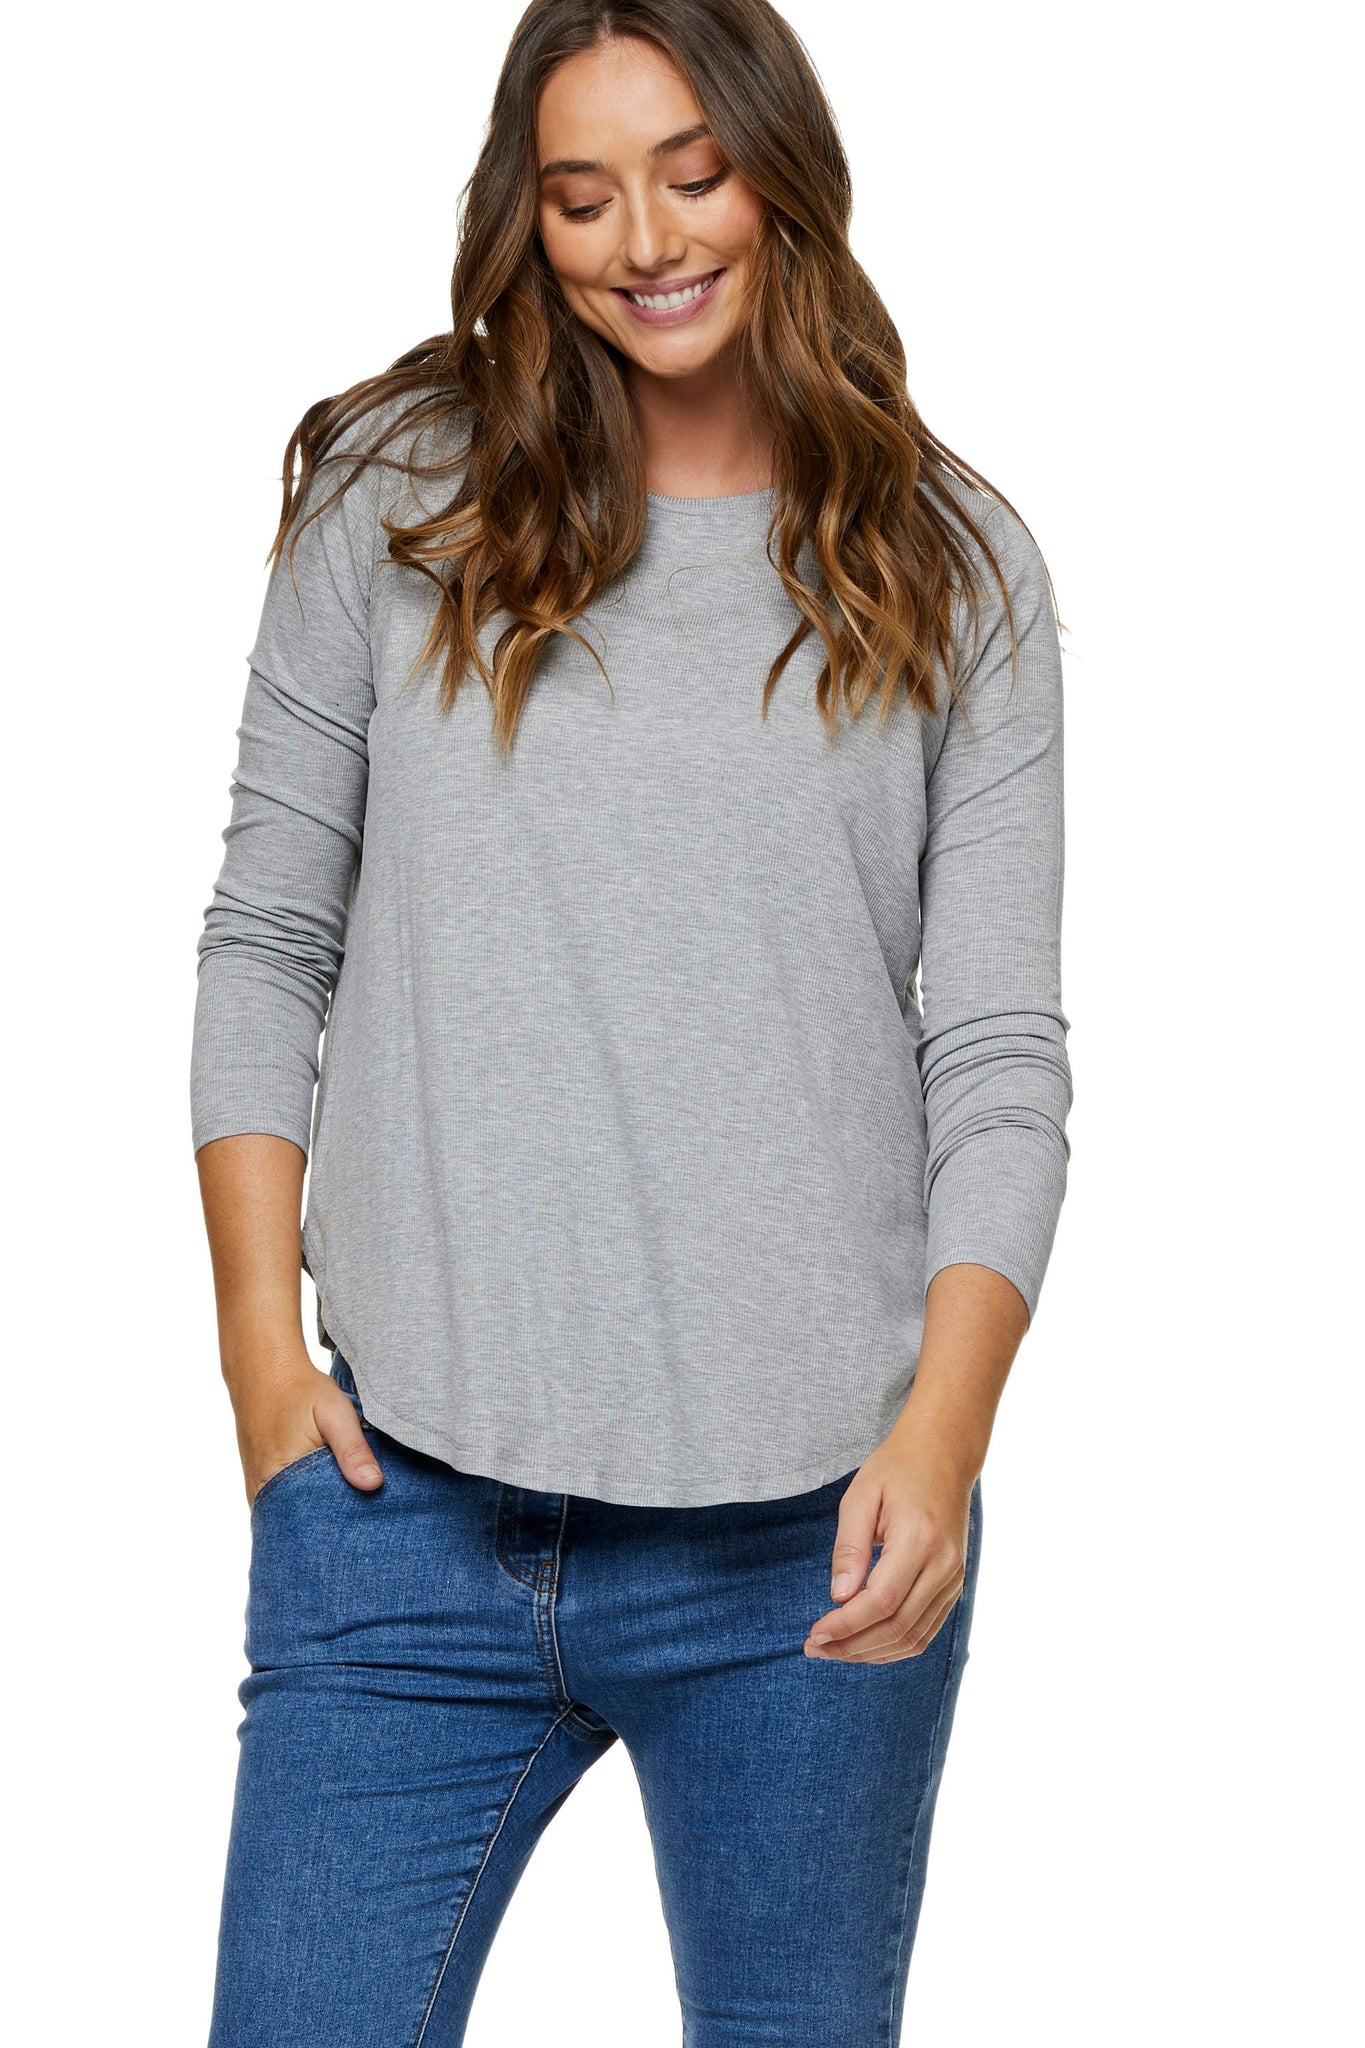 Grey nursing top - Maternity long sleeve top 6